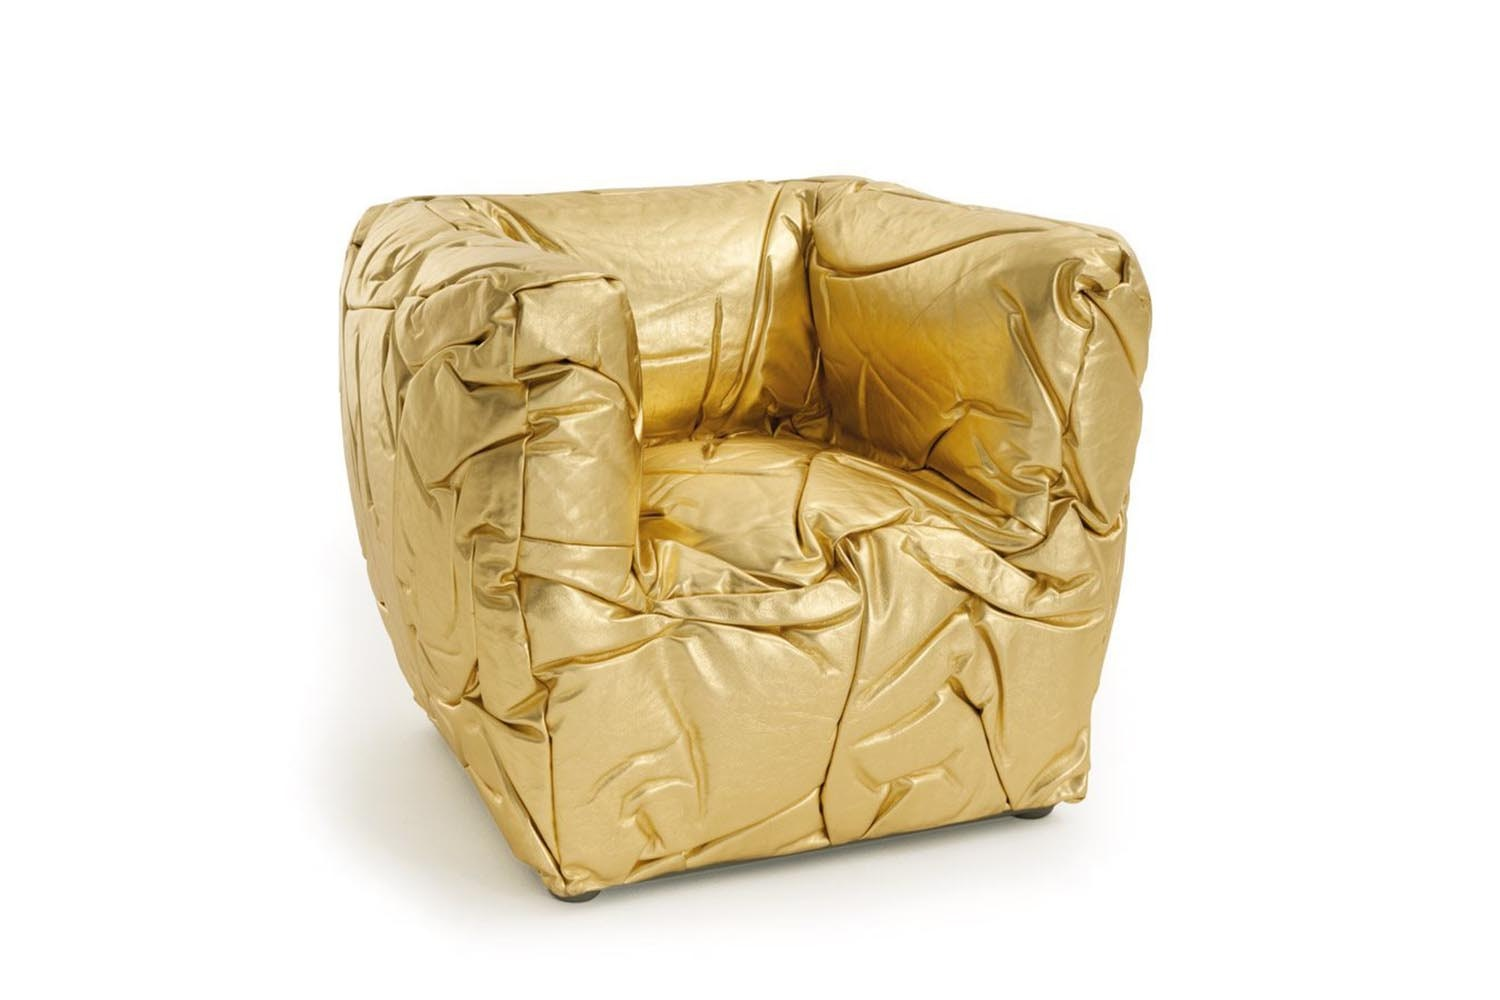 Sponge Armchair by Peter Traag for Edra